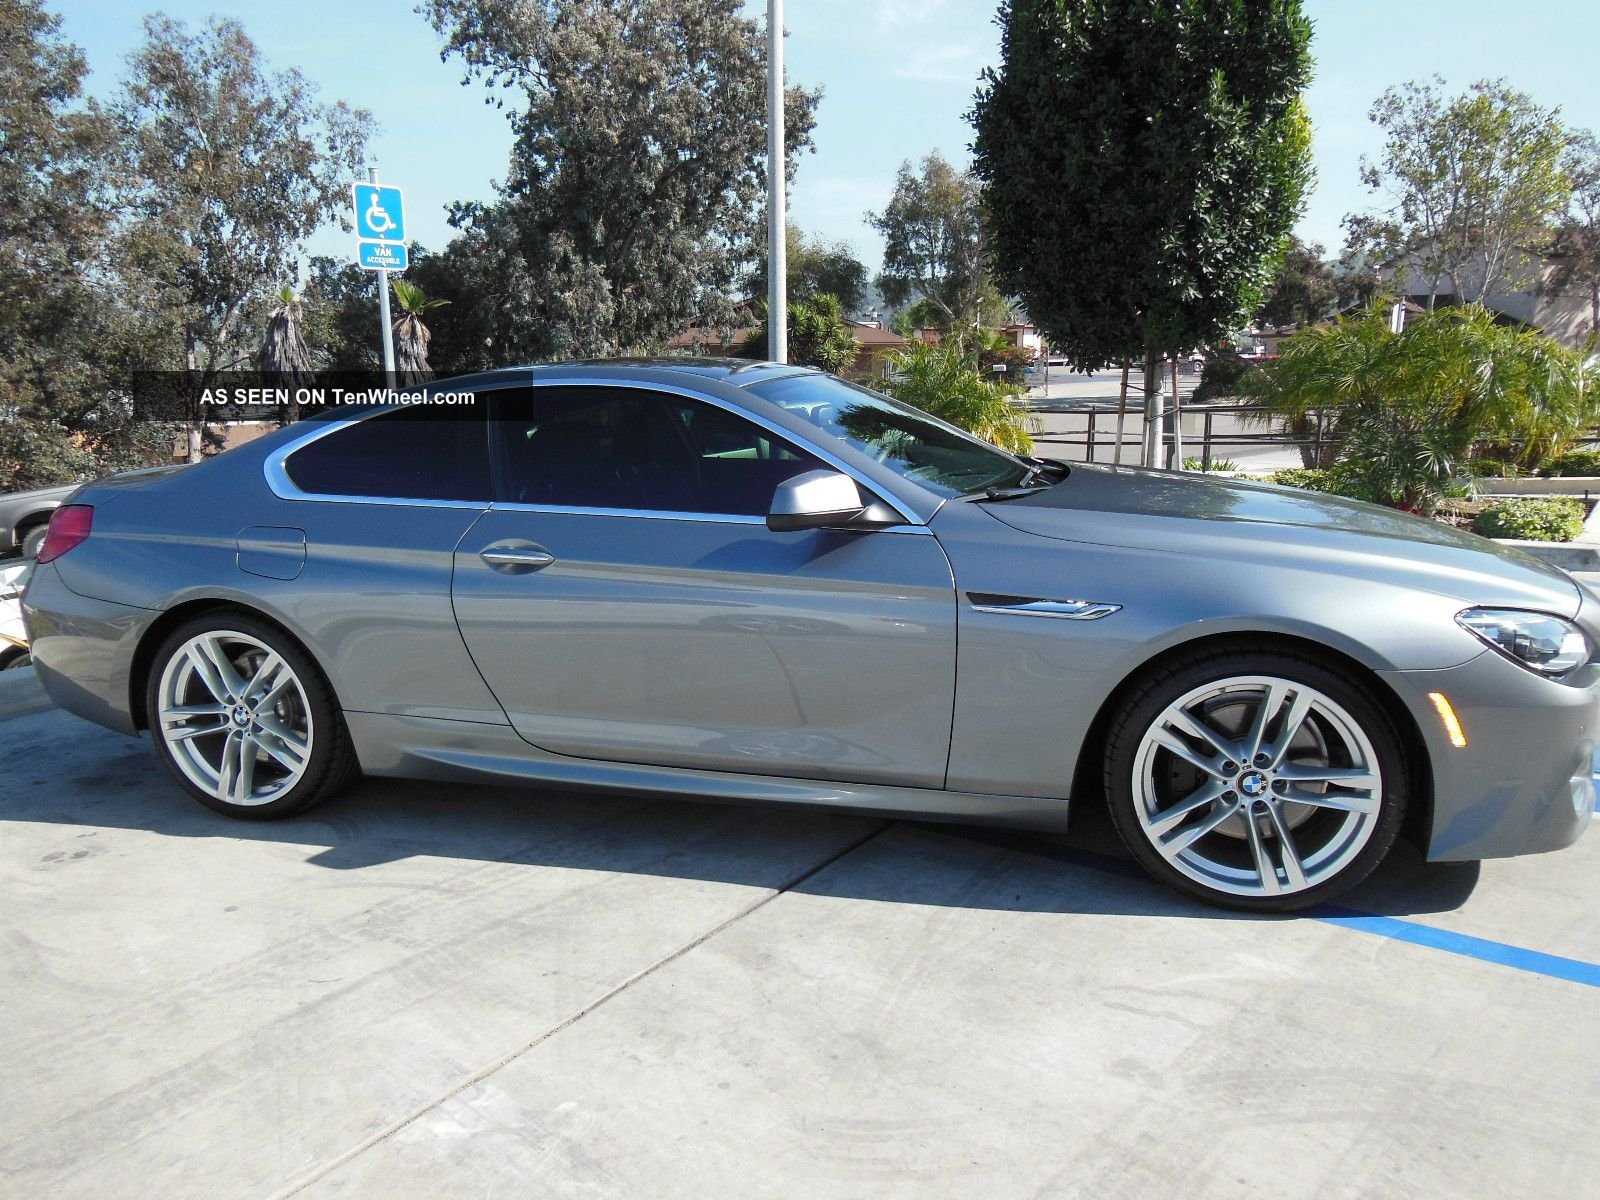 2012 bmw 650i coupe space gray fully loaded sport package. Black Bedroom Furniture Sets. Home Design Ideas